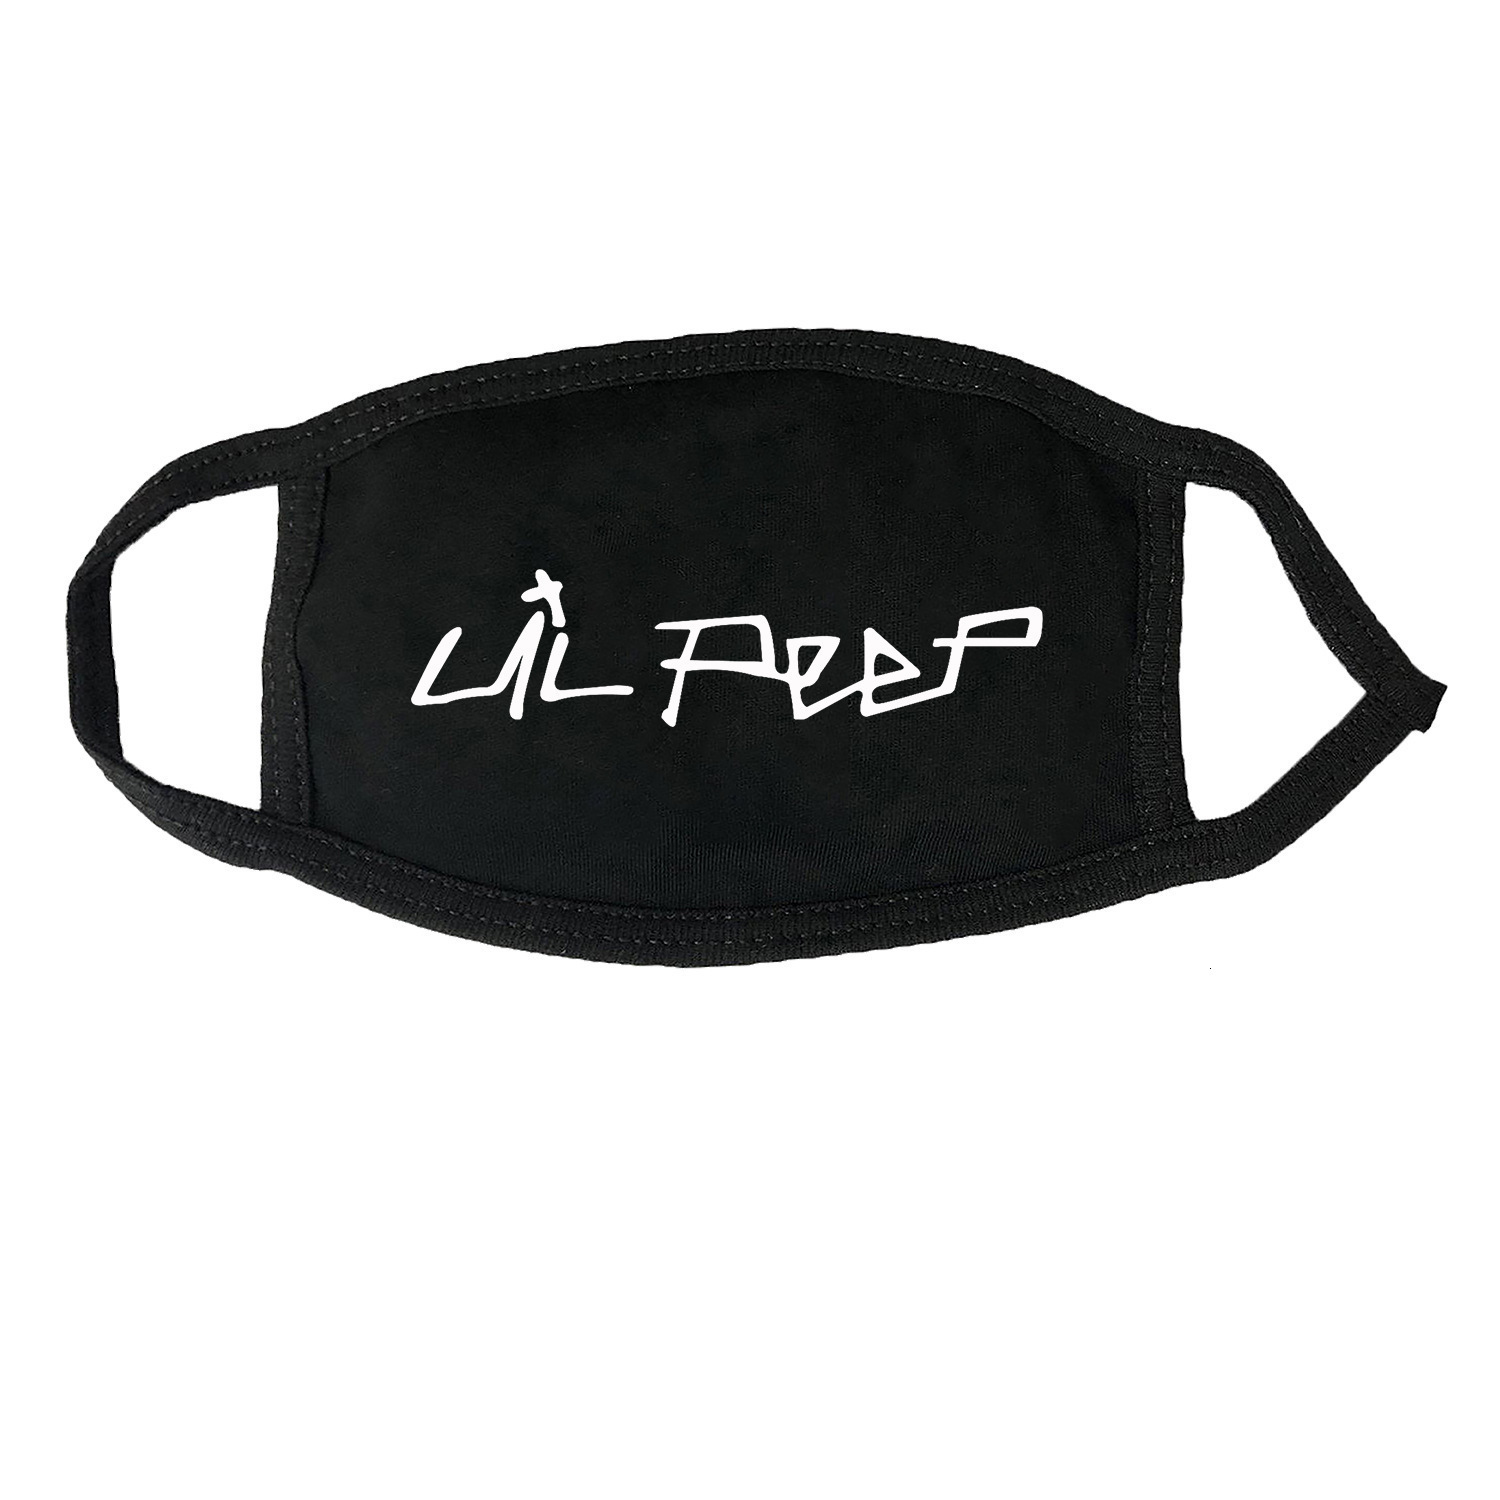 2020 Hot Lil Peep Periphery Mask For Men And Women Fund Dustproof Defence Exhaust Masks Can Clean Sex Cloth Mask Sale